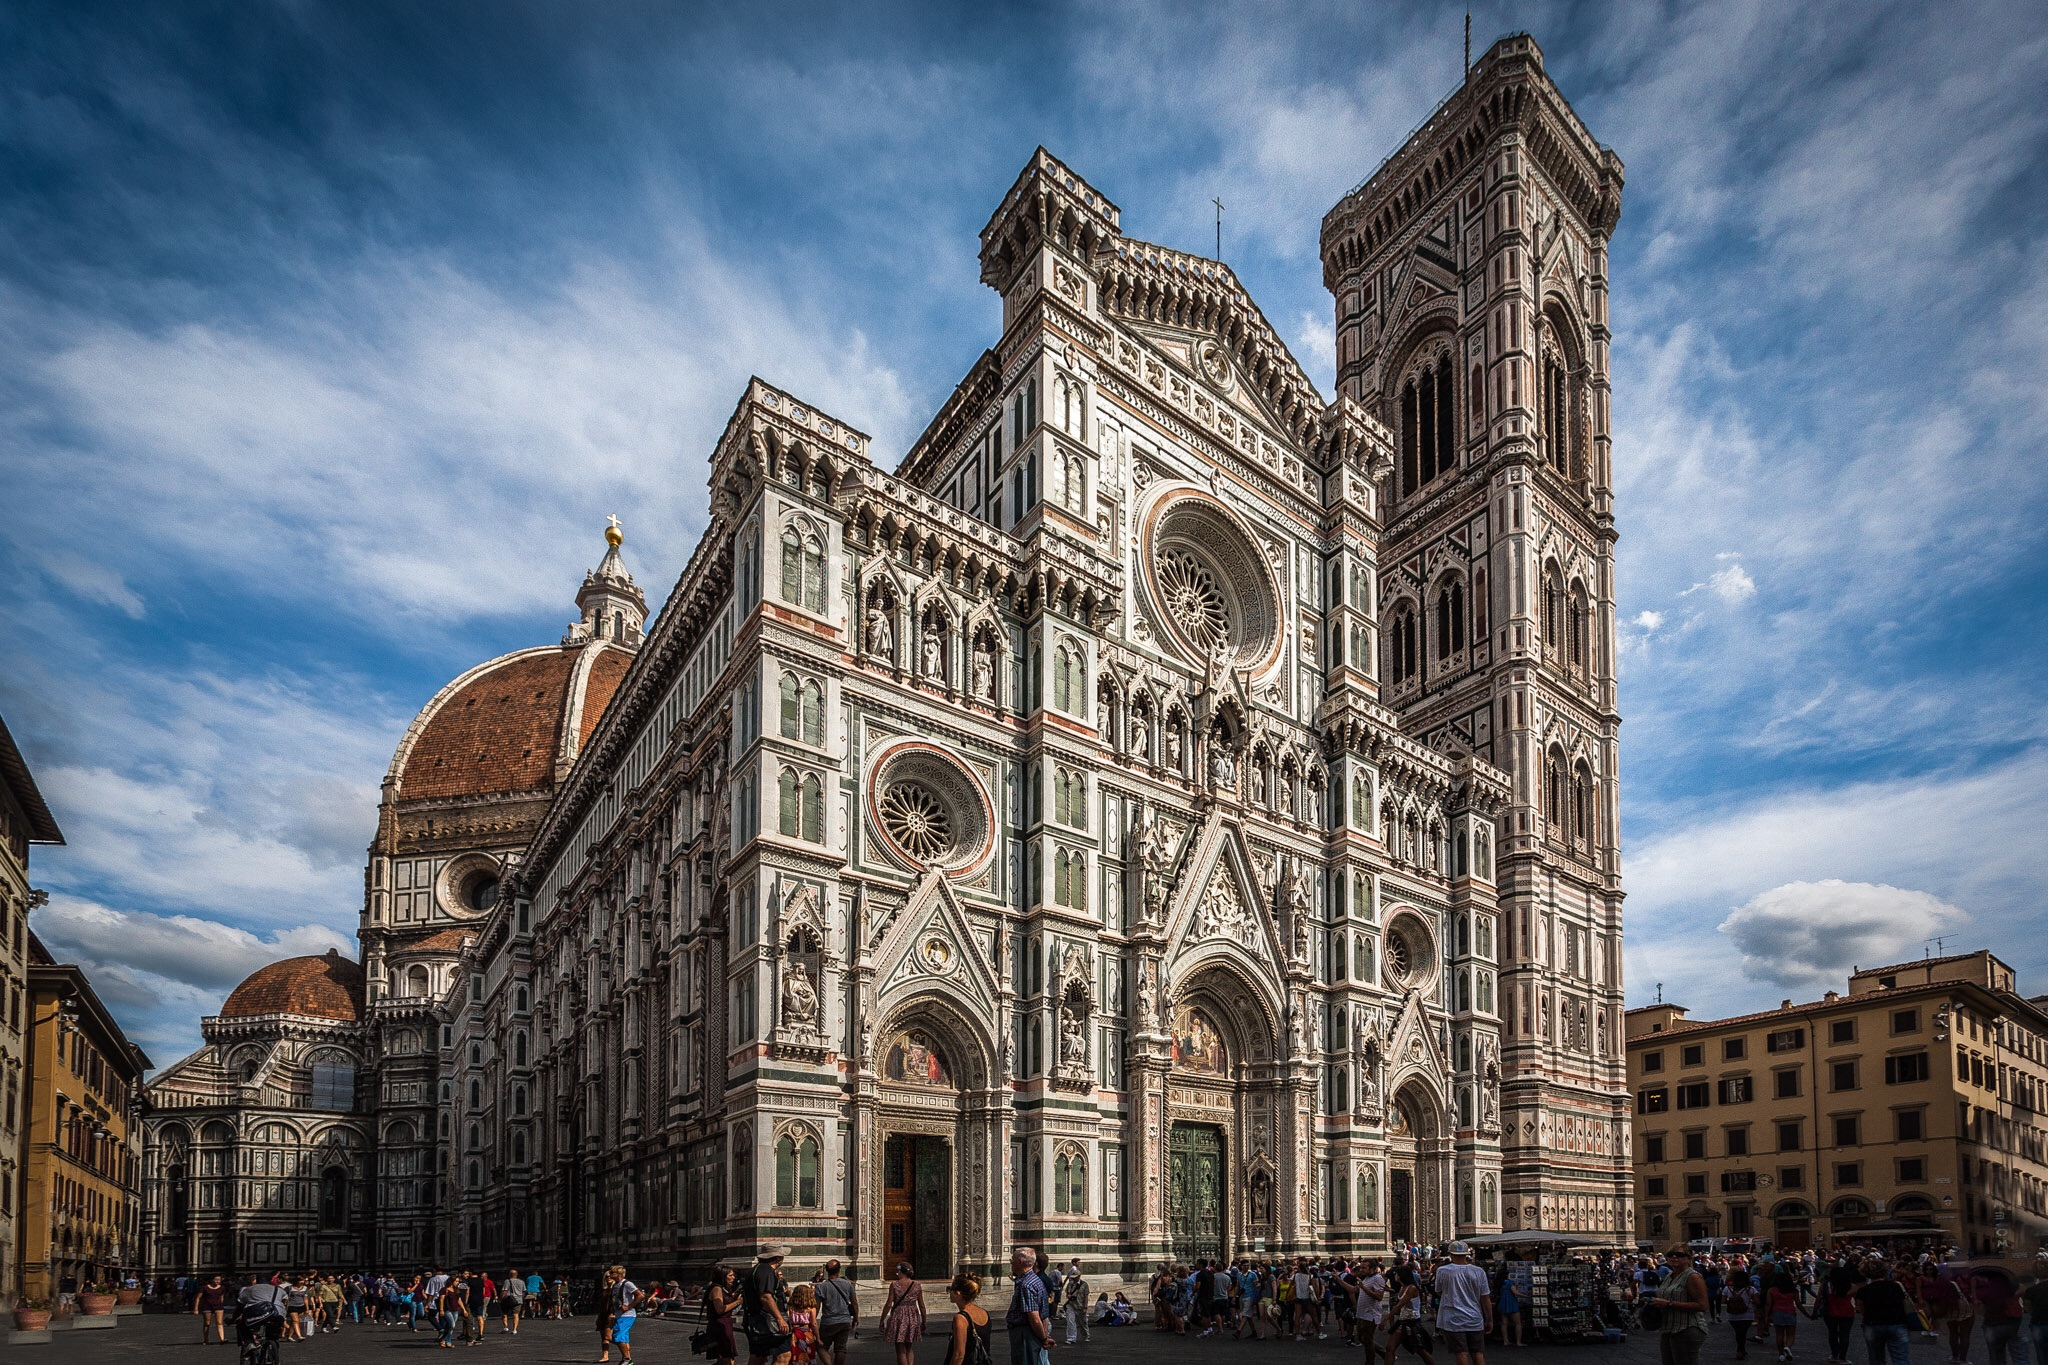 Duomo, Florence, Italy. Personal architectural photography work.